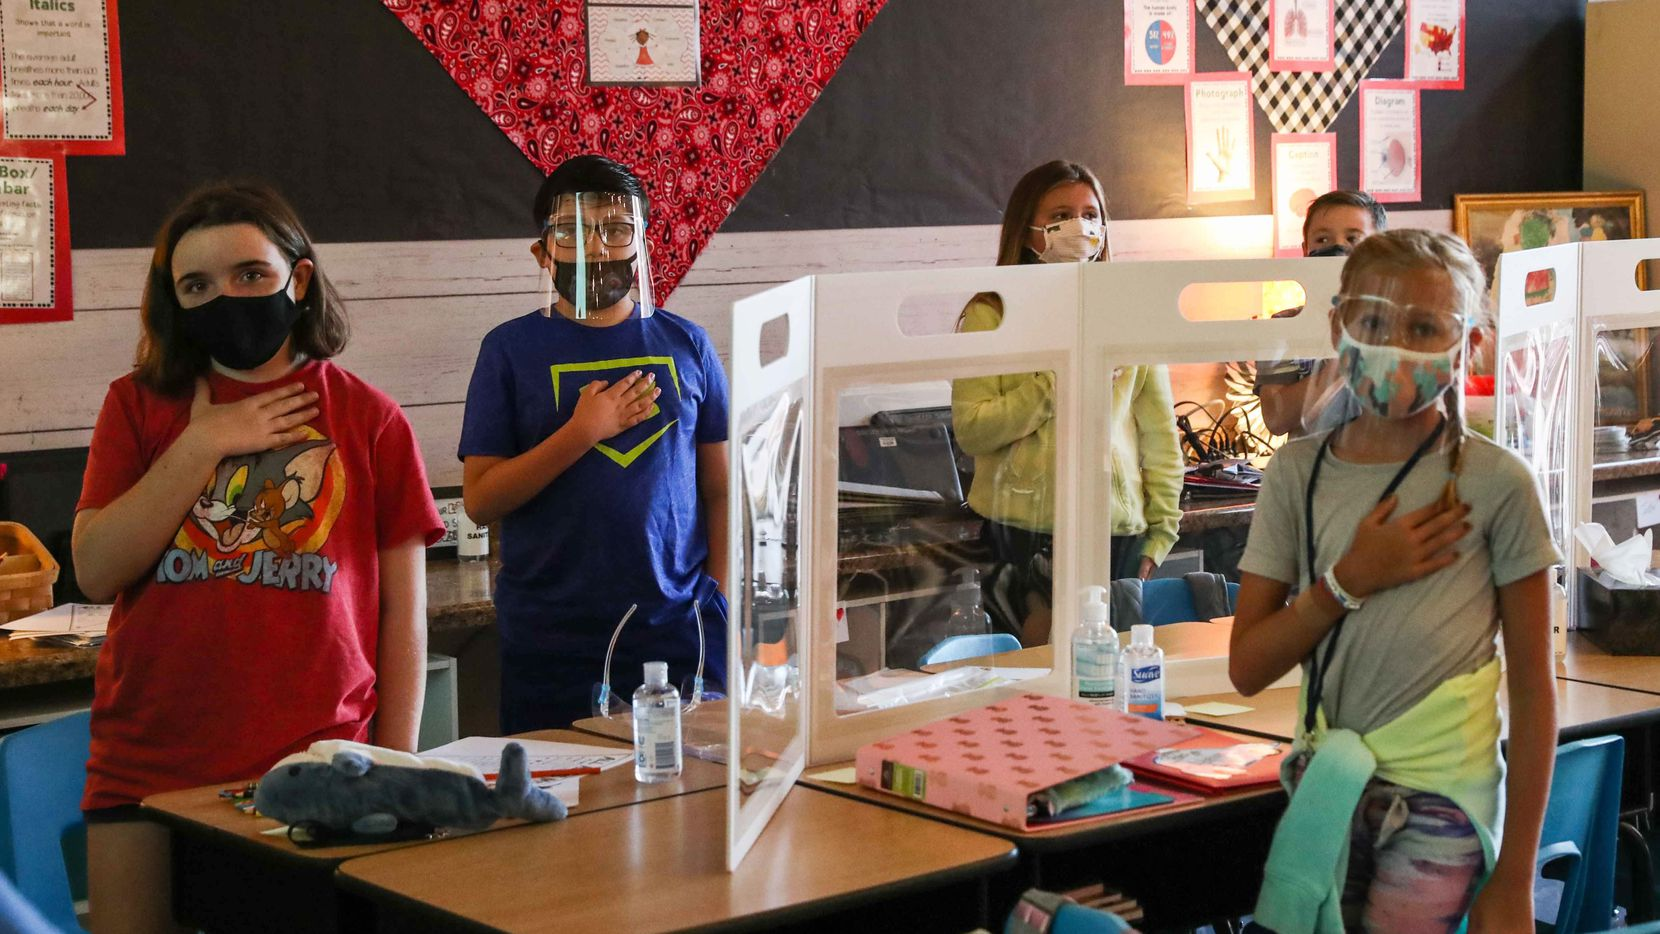 4th grade students wearing masks and face covers, take the pledge of allegiance at Jacobs Well Elementary school on its first day of class in Wimberley on Wednesday, August 19, 2020.